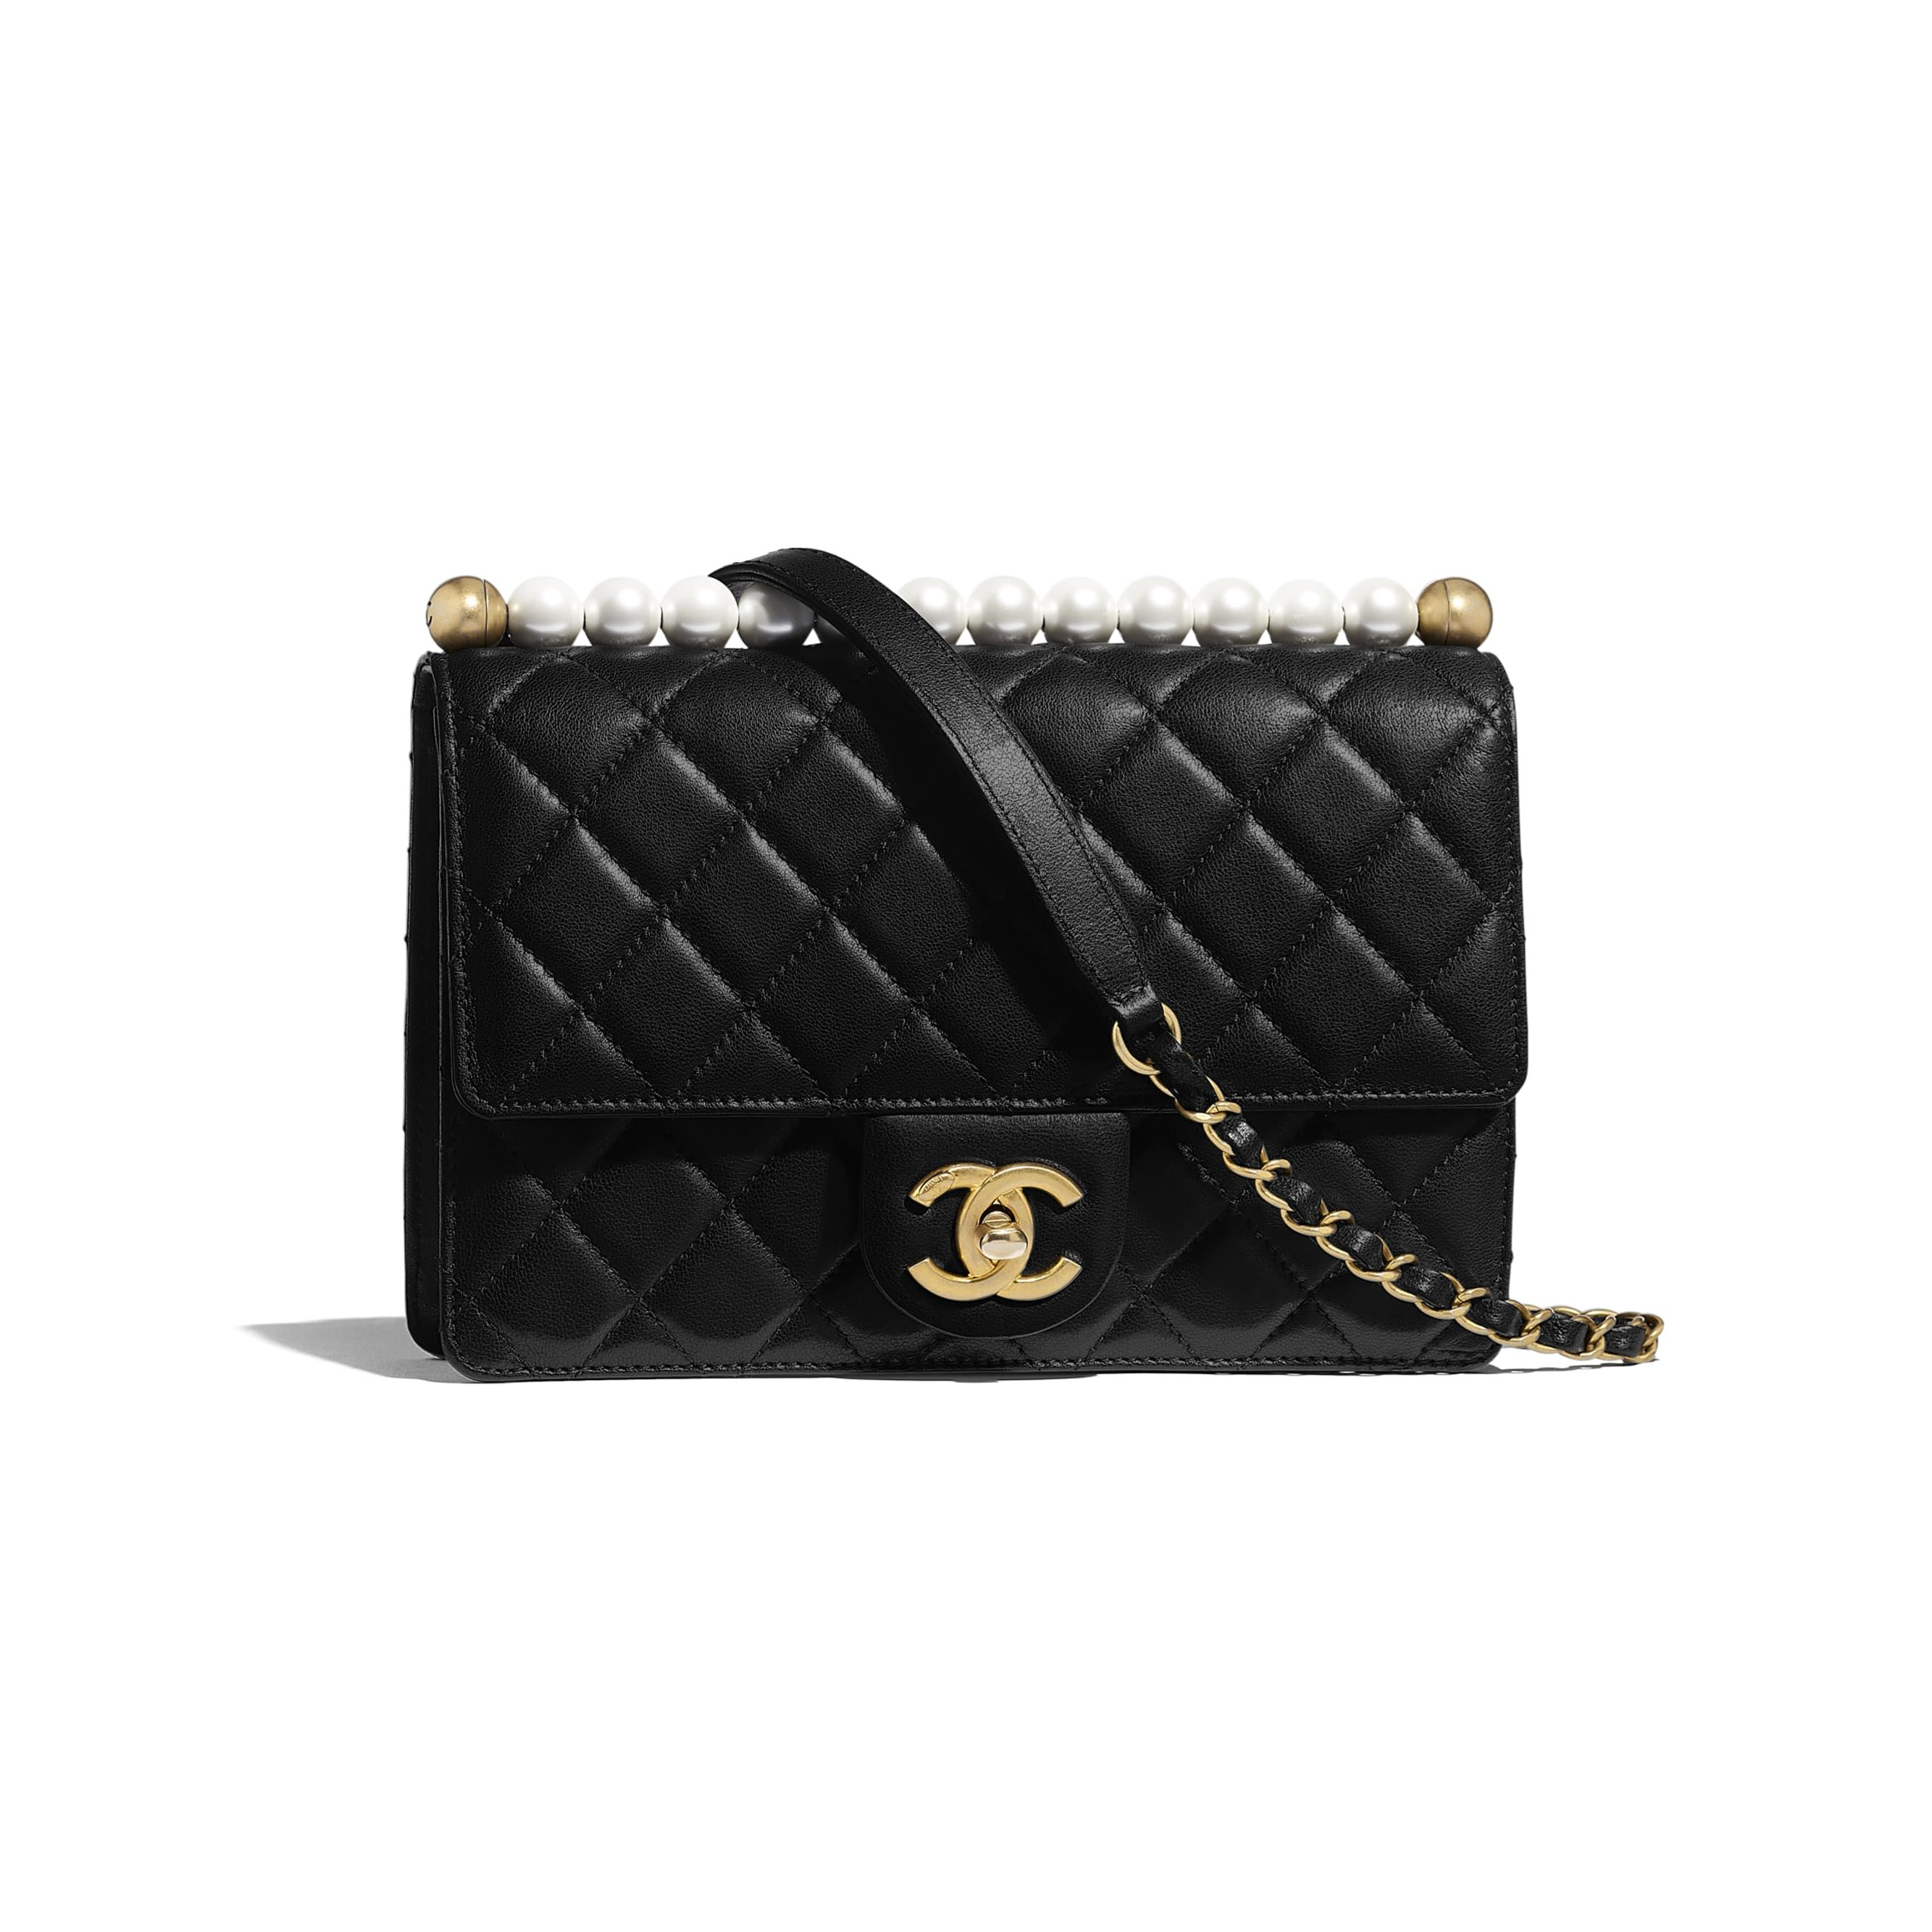 cbdae1656 Chanel - SS2019 | Black lambskin, imitation pearls & gold-tone metal flap  bag ($4,300)